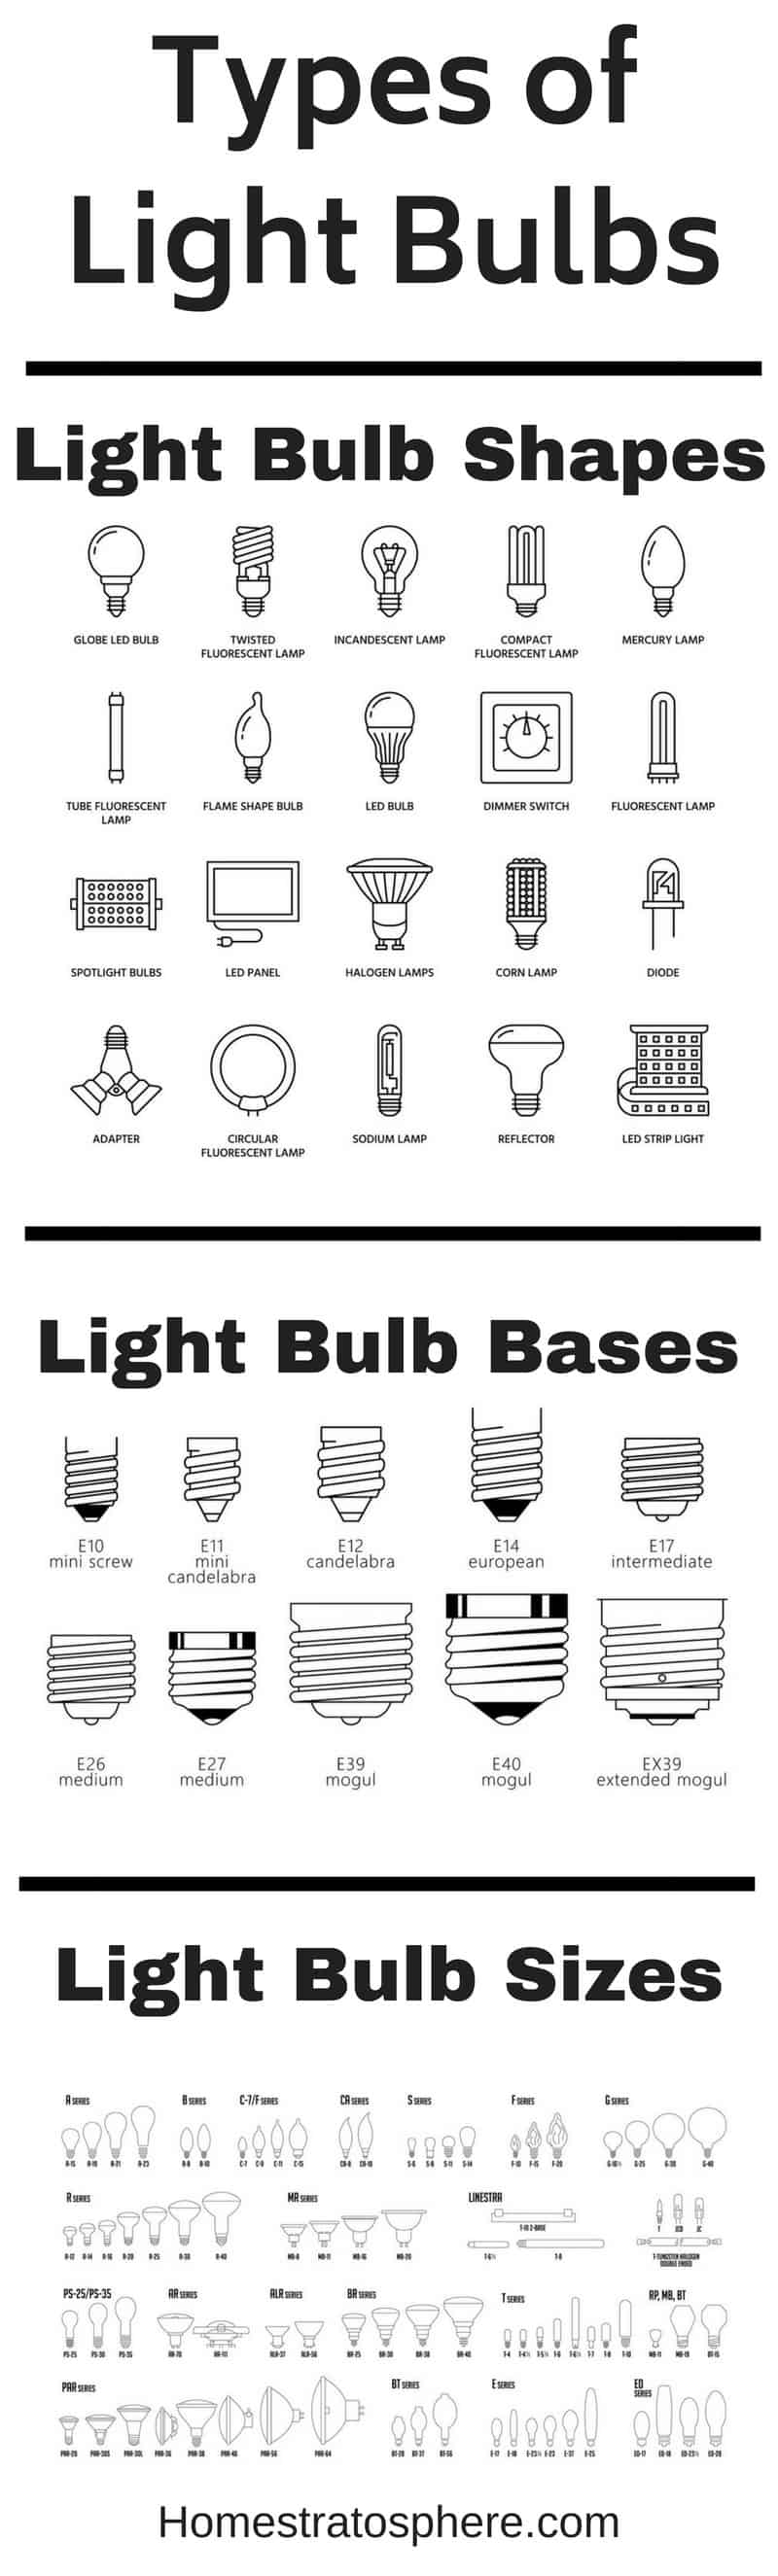 Types of Light Bulbs Chart